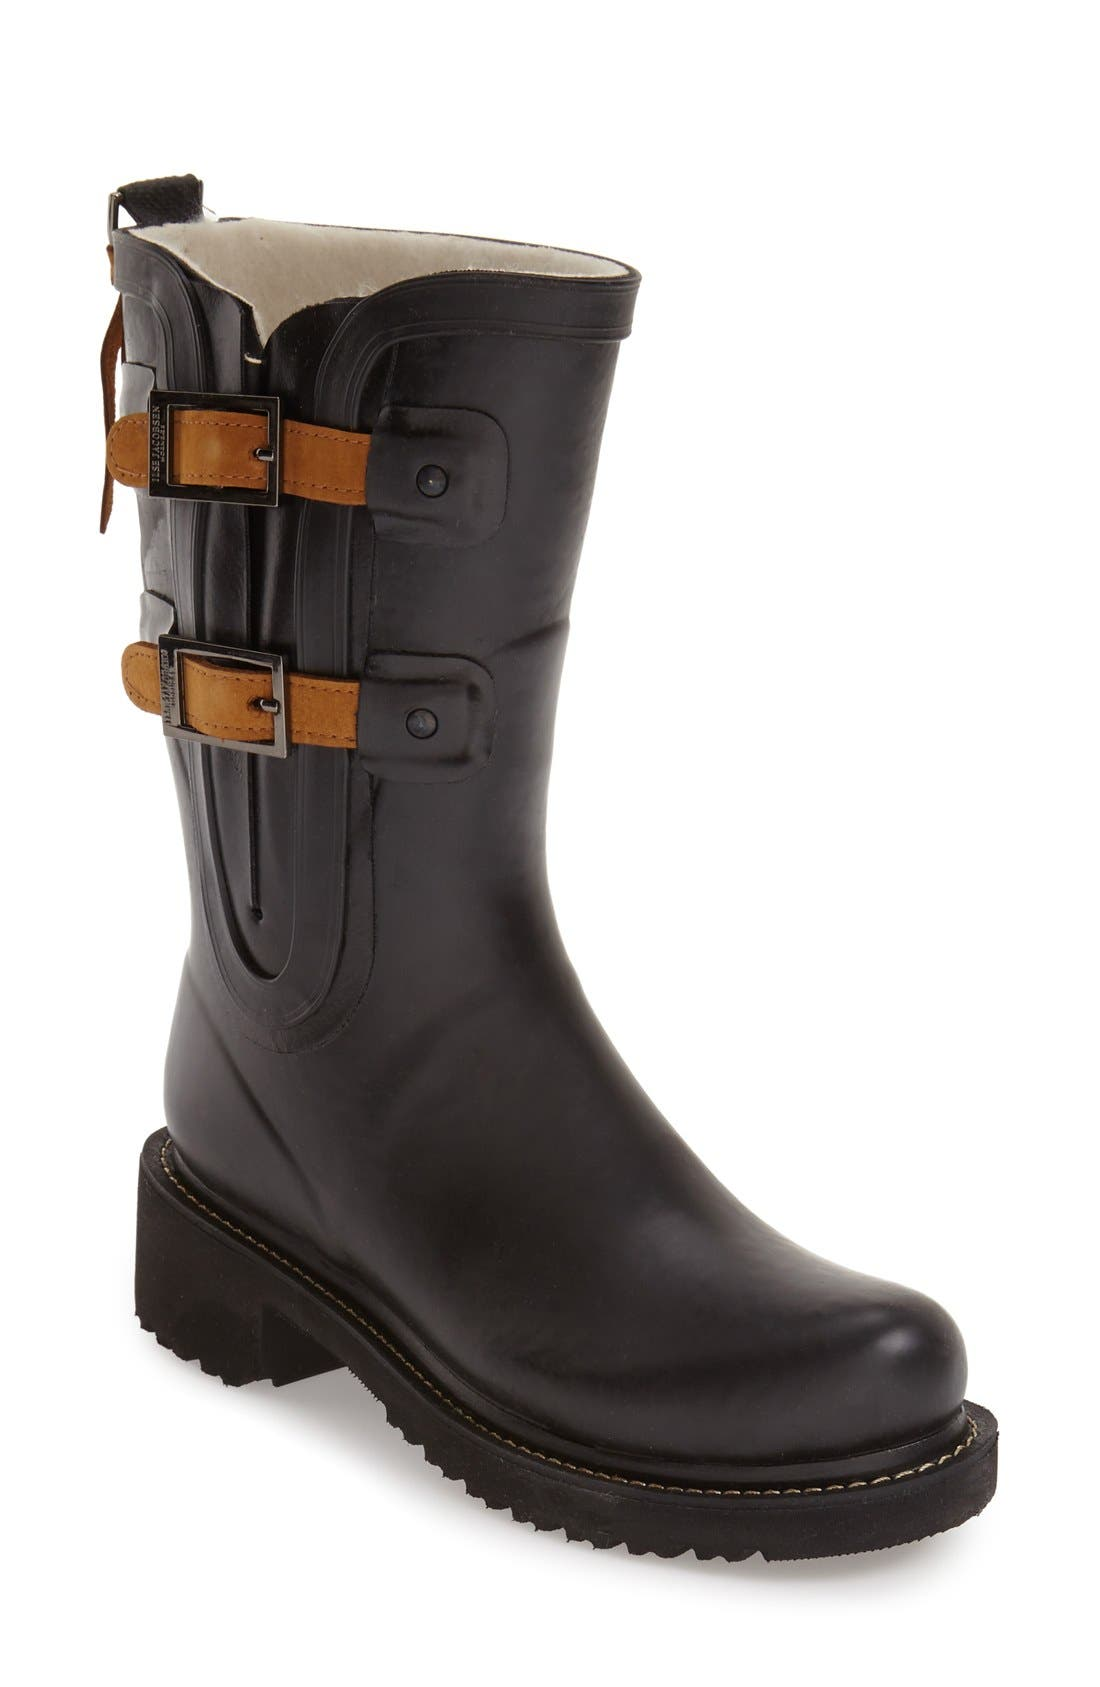 Alternate Image 1 Selected - Ilse Jacobsen Waterproof Buckle Detail Snow/Rain Boot (Women)